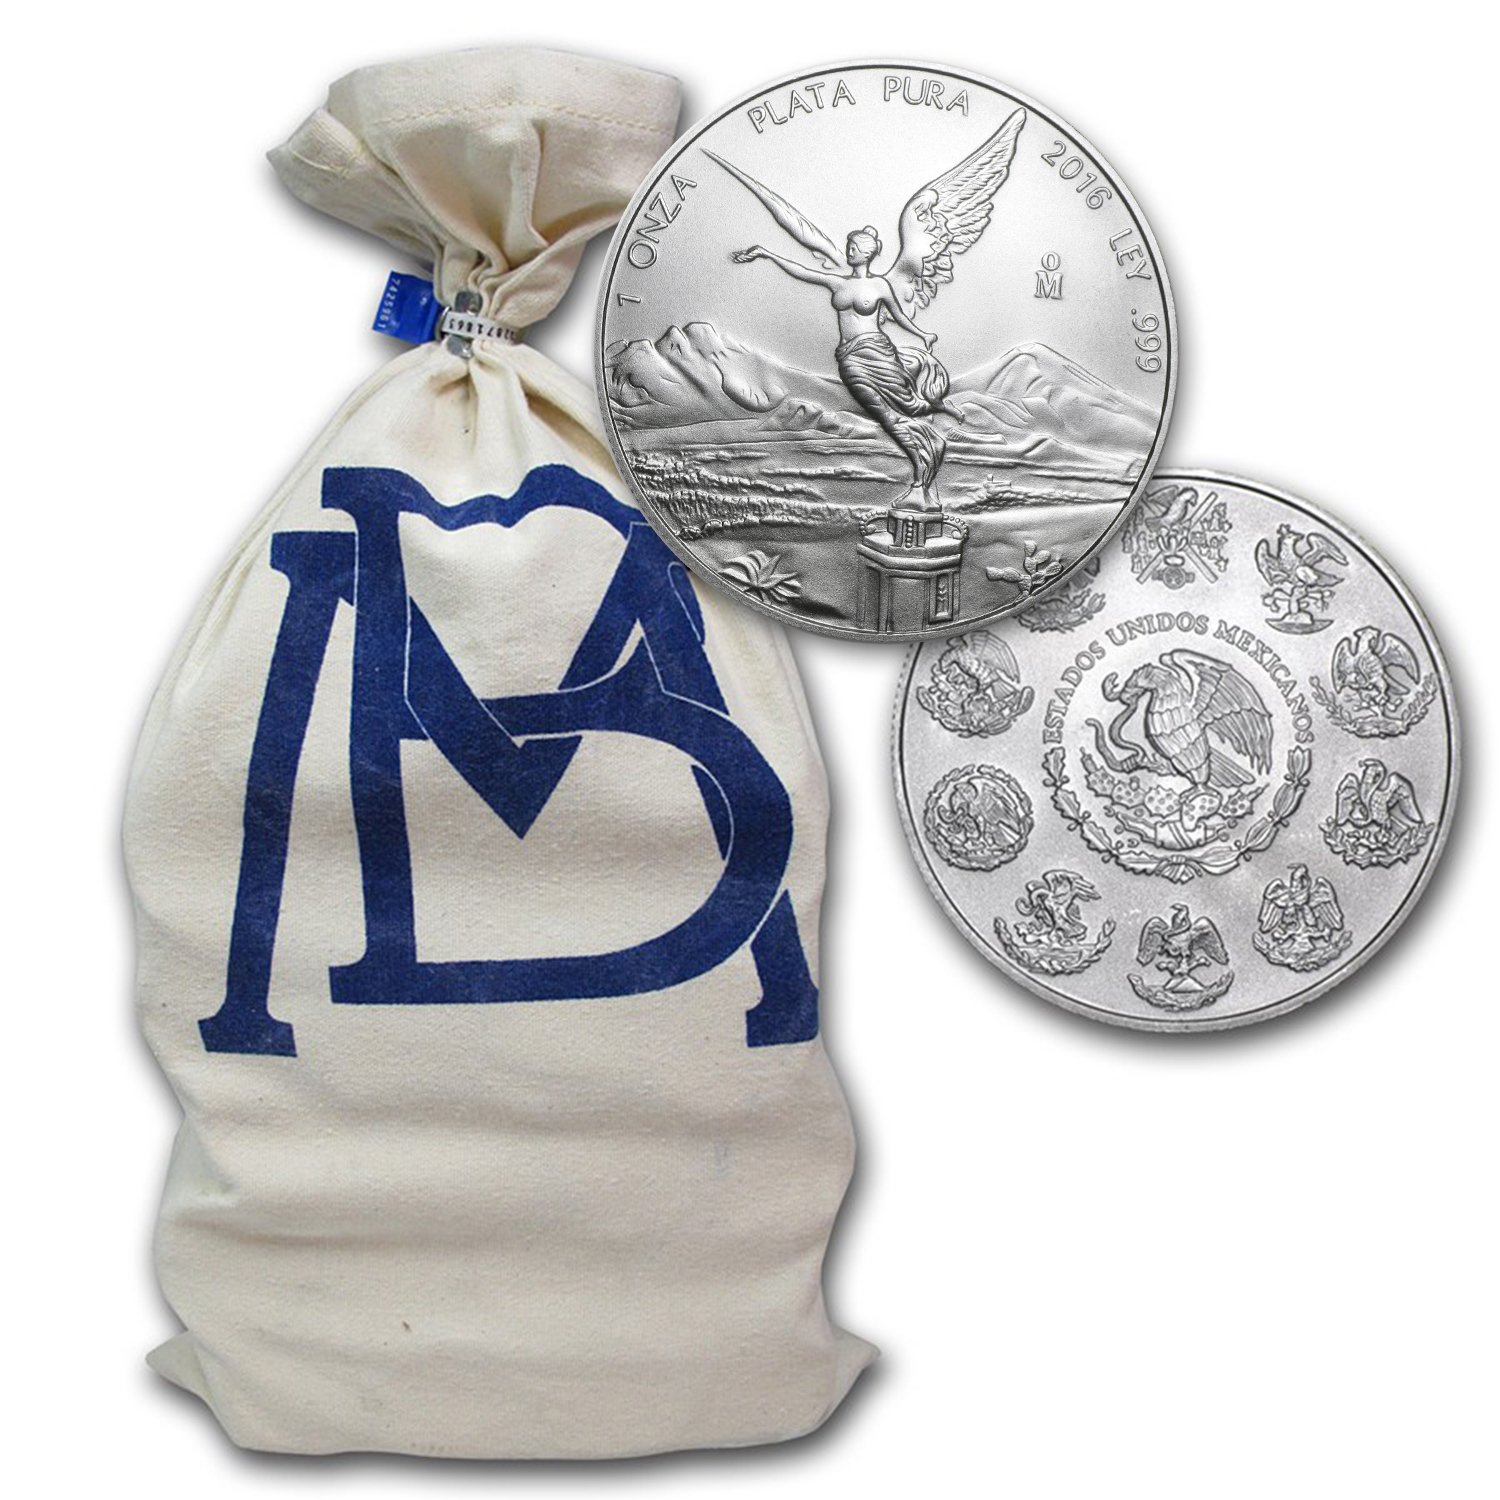 2016 Mexico 1 oz Silver Libertad (450-Coin Original Bank Bag)